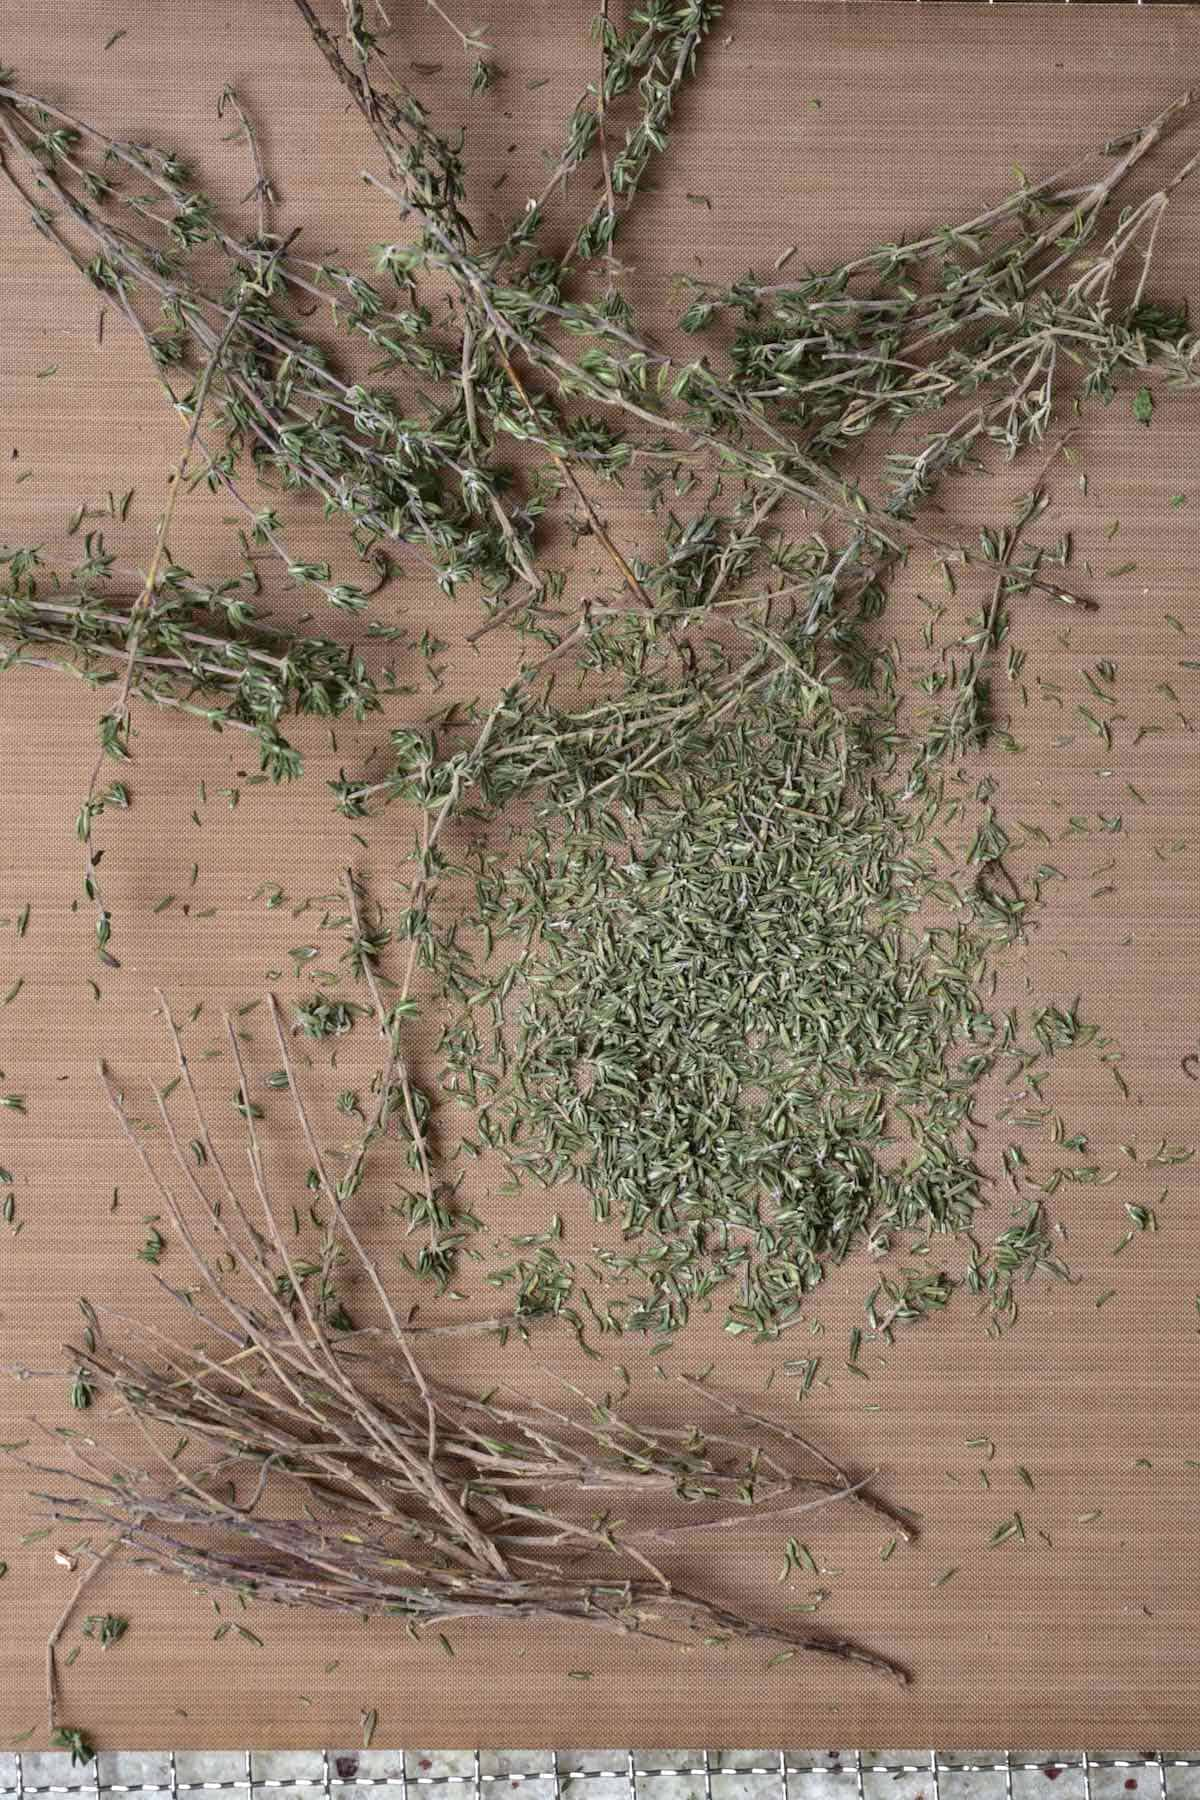 Dried thyme with the stems removed